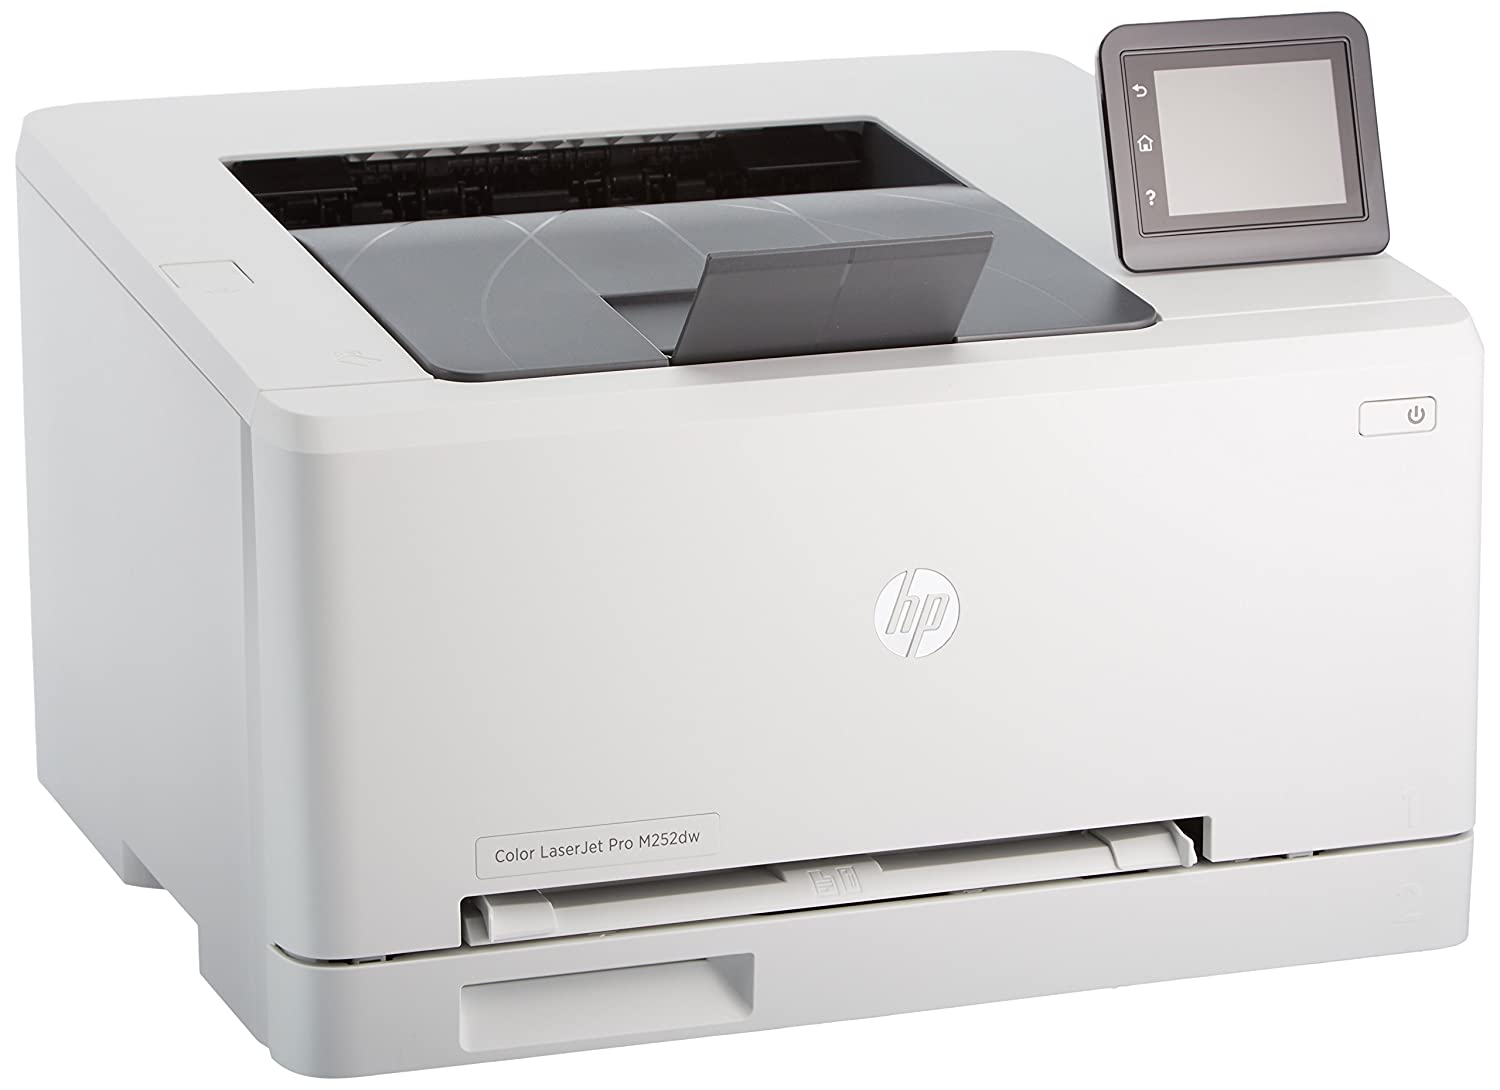 Amazon.com: HP Laserjet Pro M252dw Wireless Color Printer, (B4A22A):  Electronics